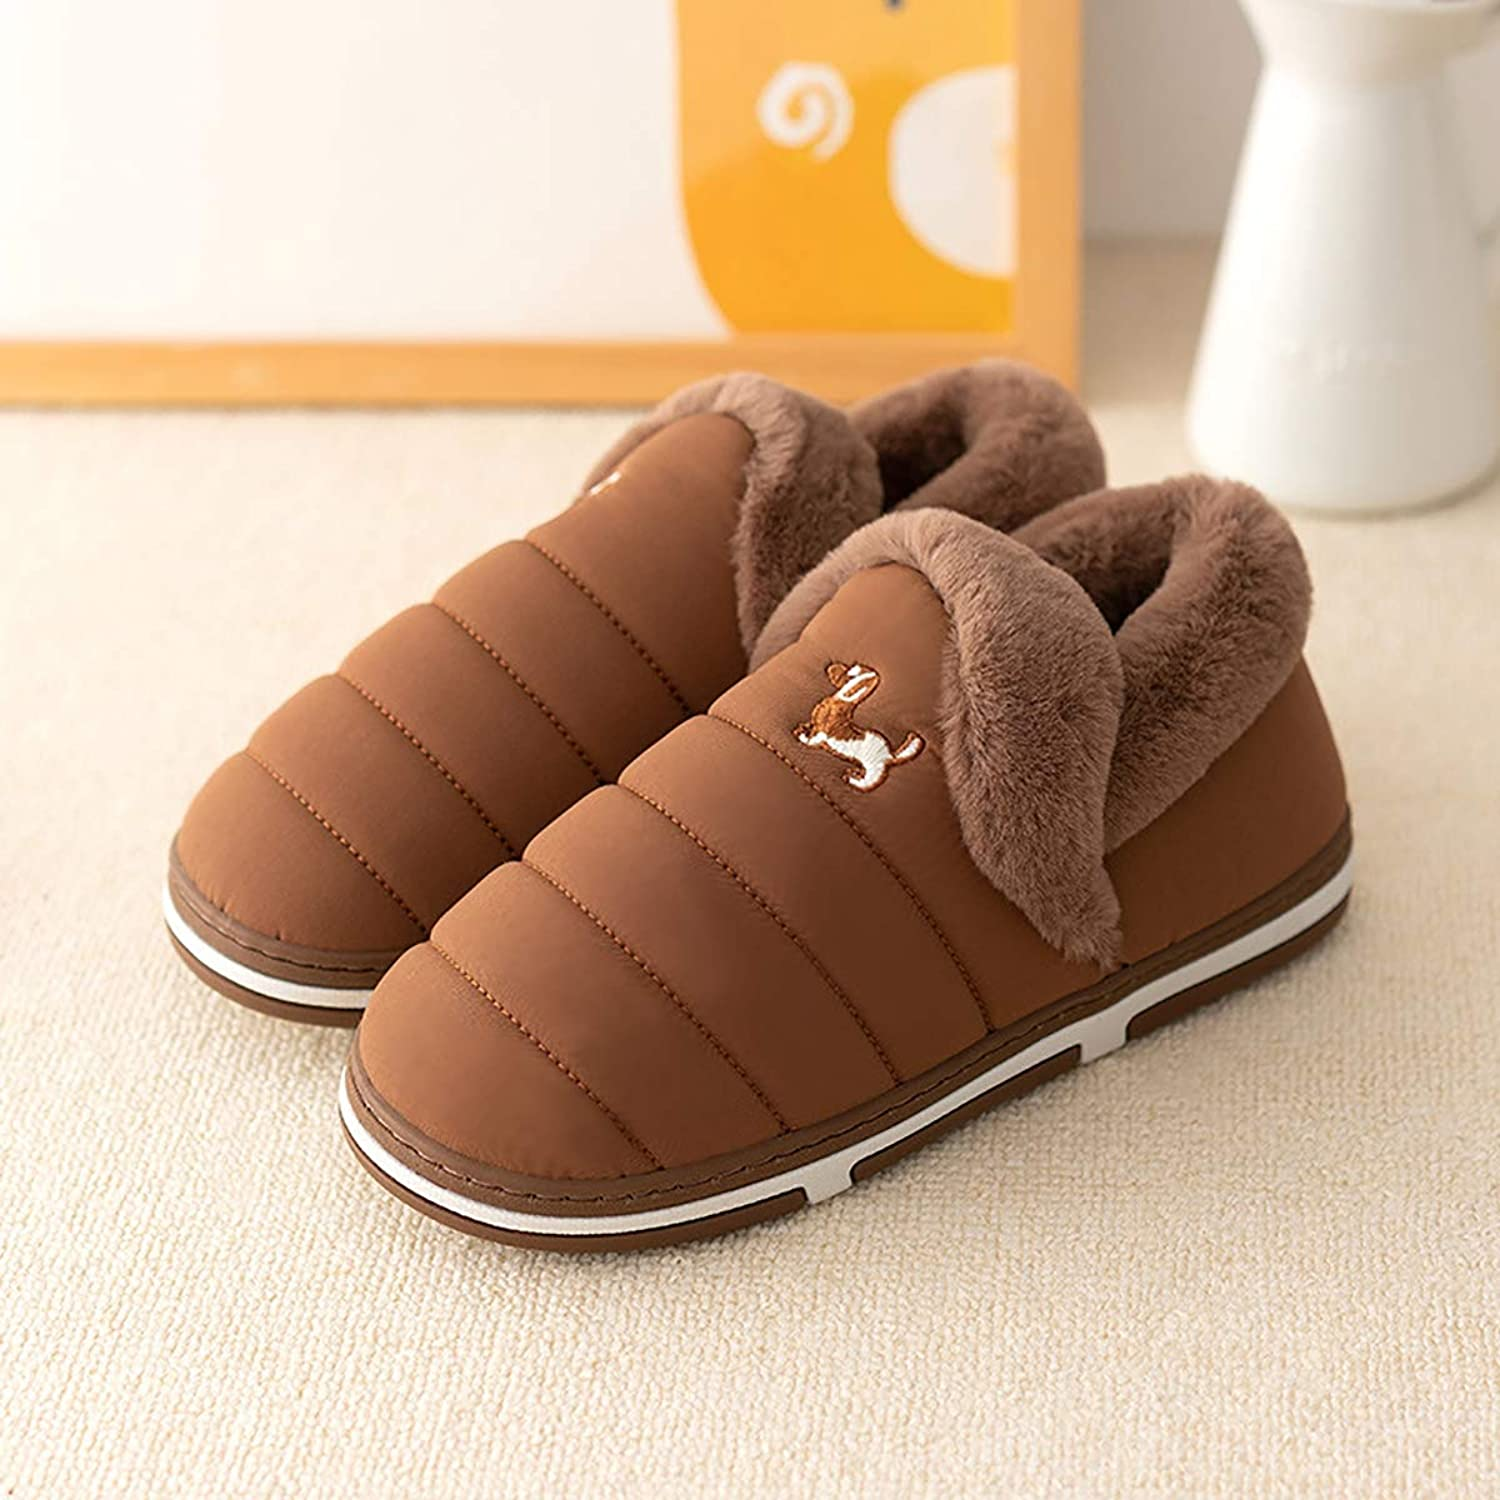 Plush Slippers with All-Inclusive Heel Indoor Warm Non-Slip TPR Cotton shoes Washable Home Waterproof shoes for Men and Women,Brown,42 43